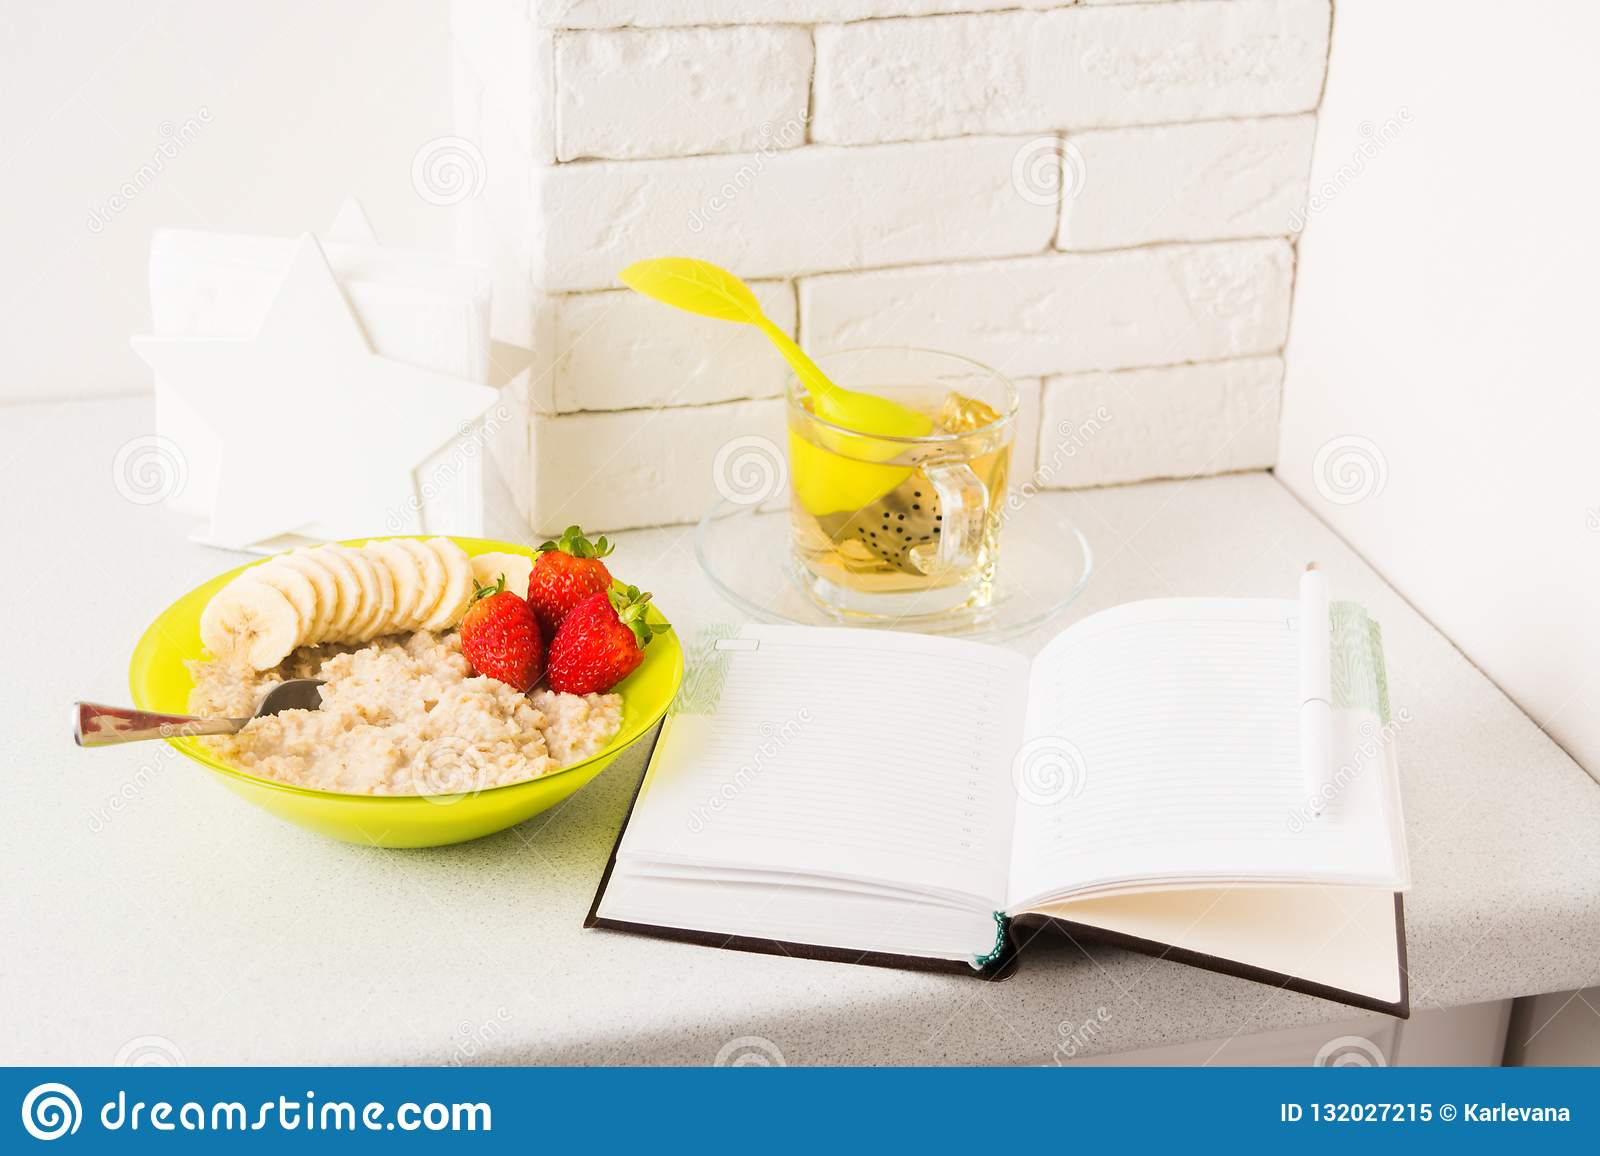 Diet Plan With Healthy Breakfast Of Oatmeal And Tea Stock Image